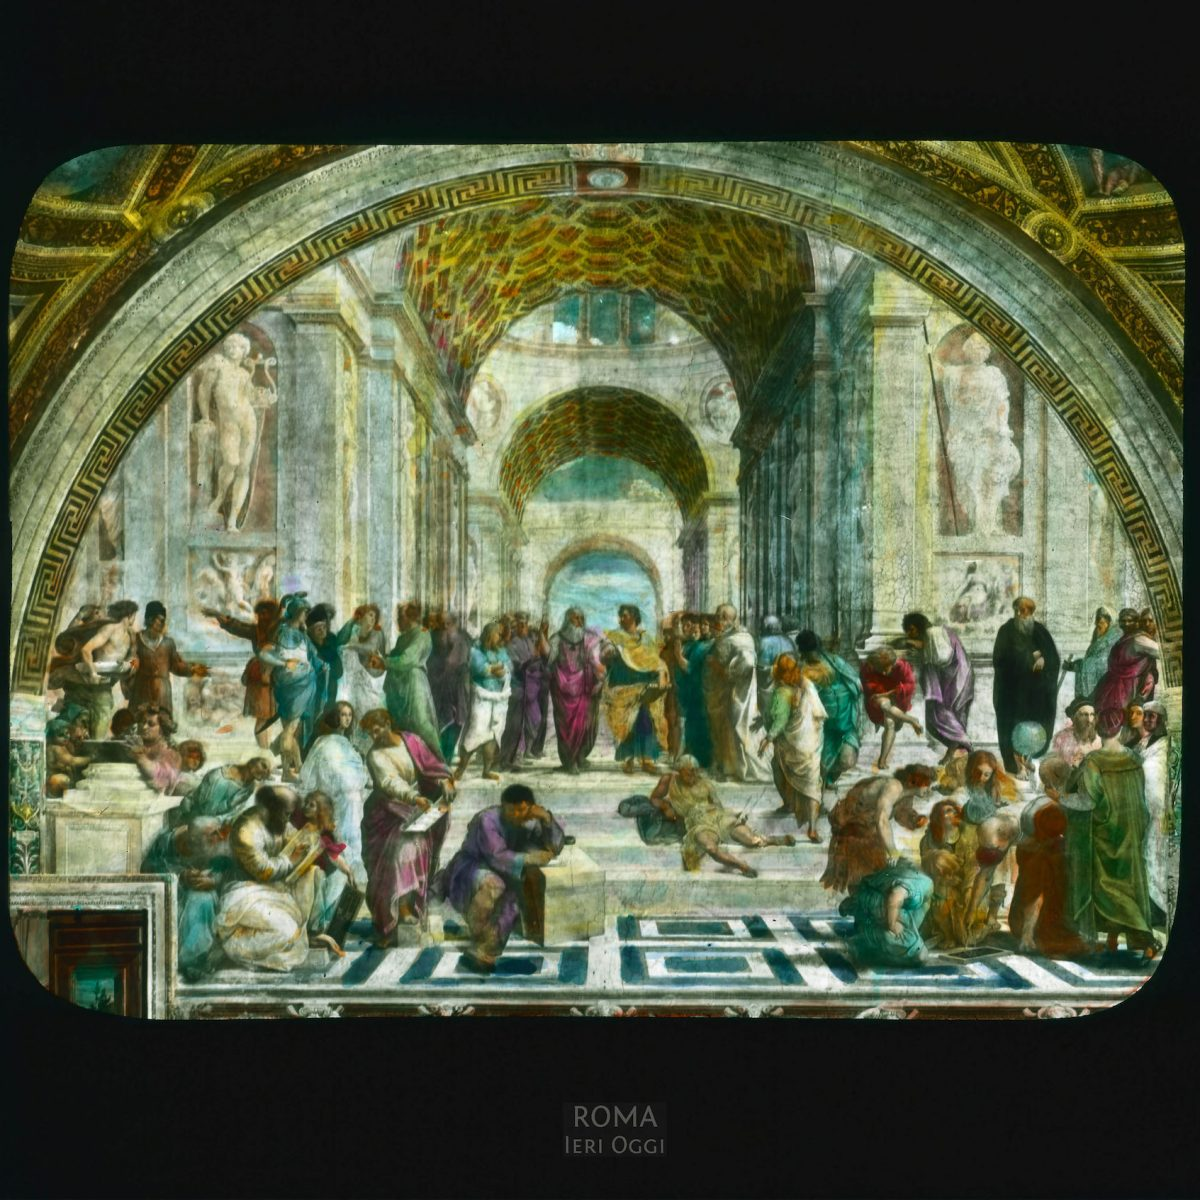 """Vatican City. Stanze della Segnatura: detail, Raphael's """"School of Athens"""" View in tinted lantern slide, ca. 1919-1938. The painting dates from ca. 1508-1511."""